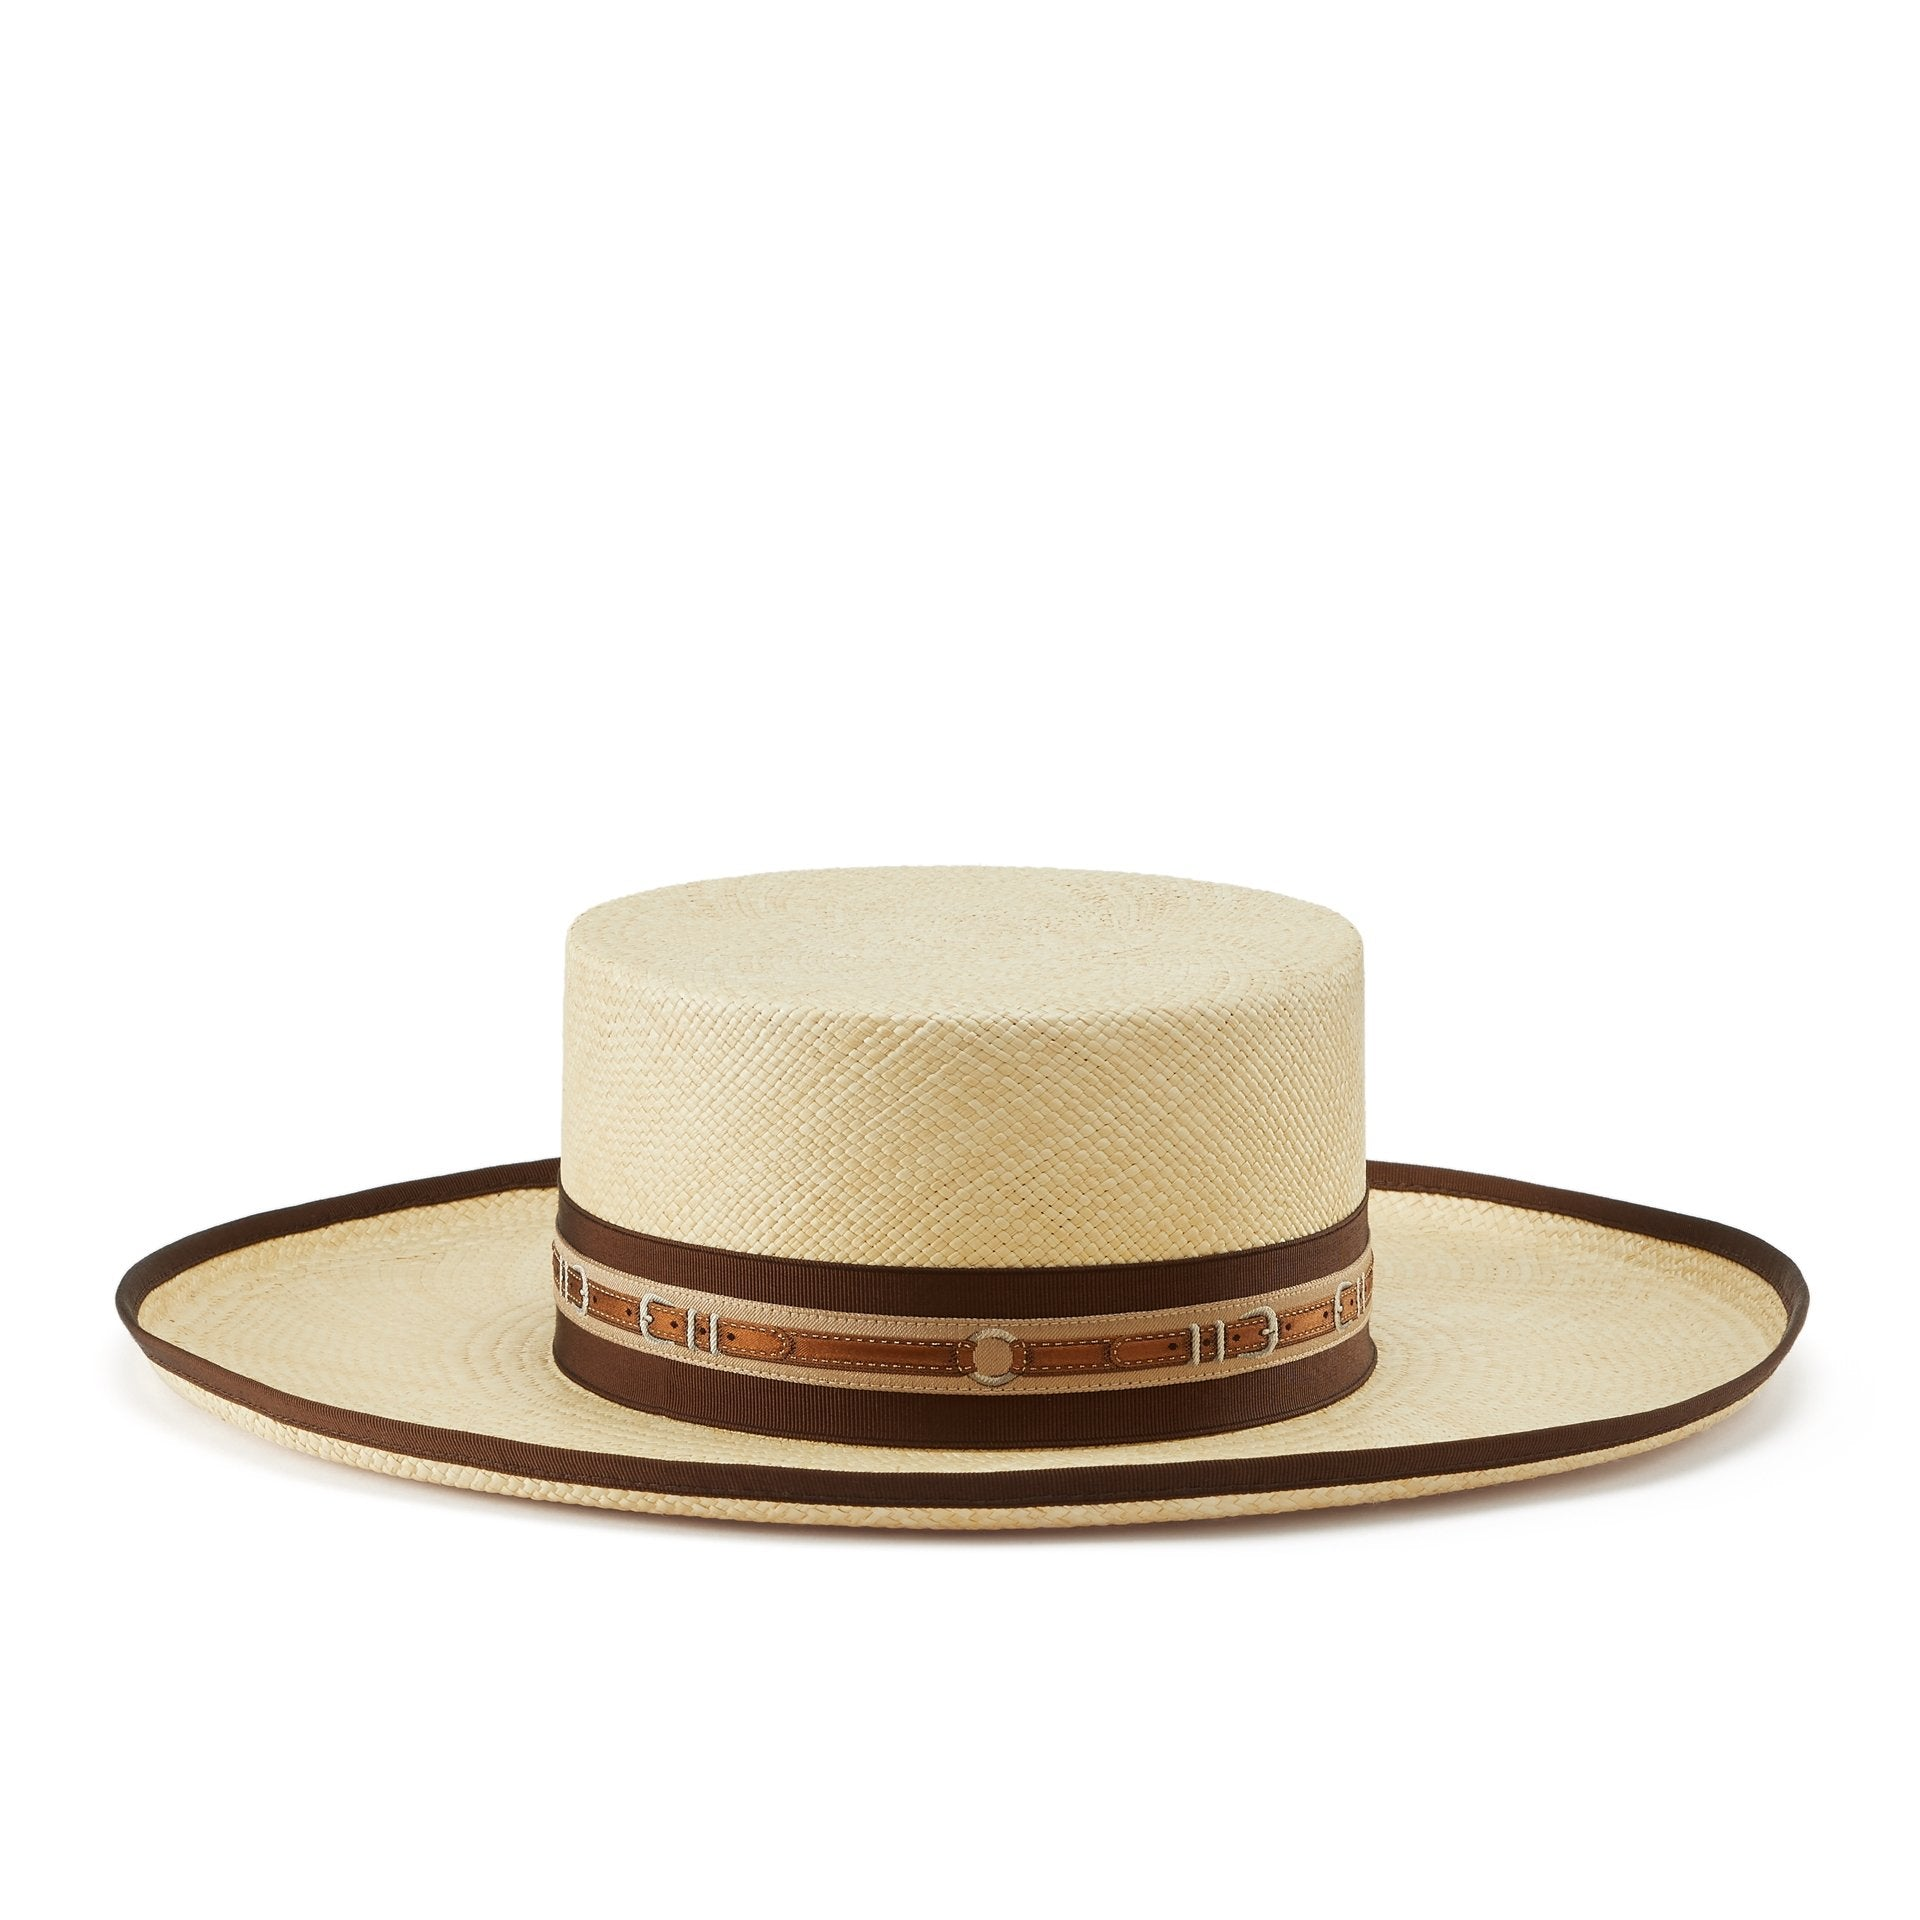 Toulon Panama - Women's hats - Lock & Co. Hatters London UK